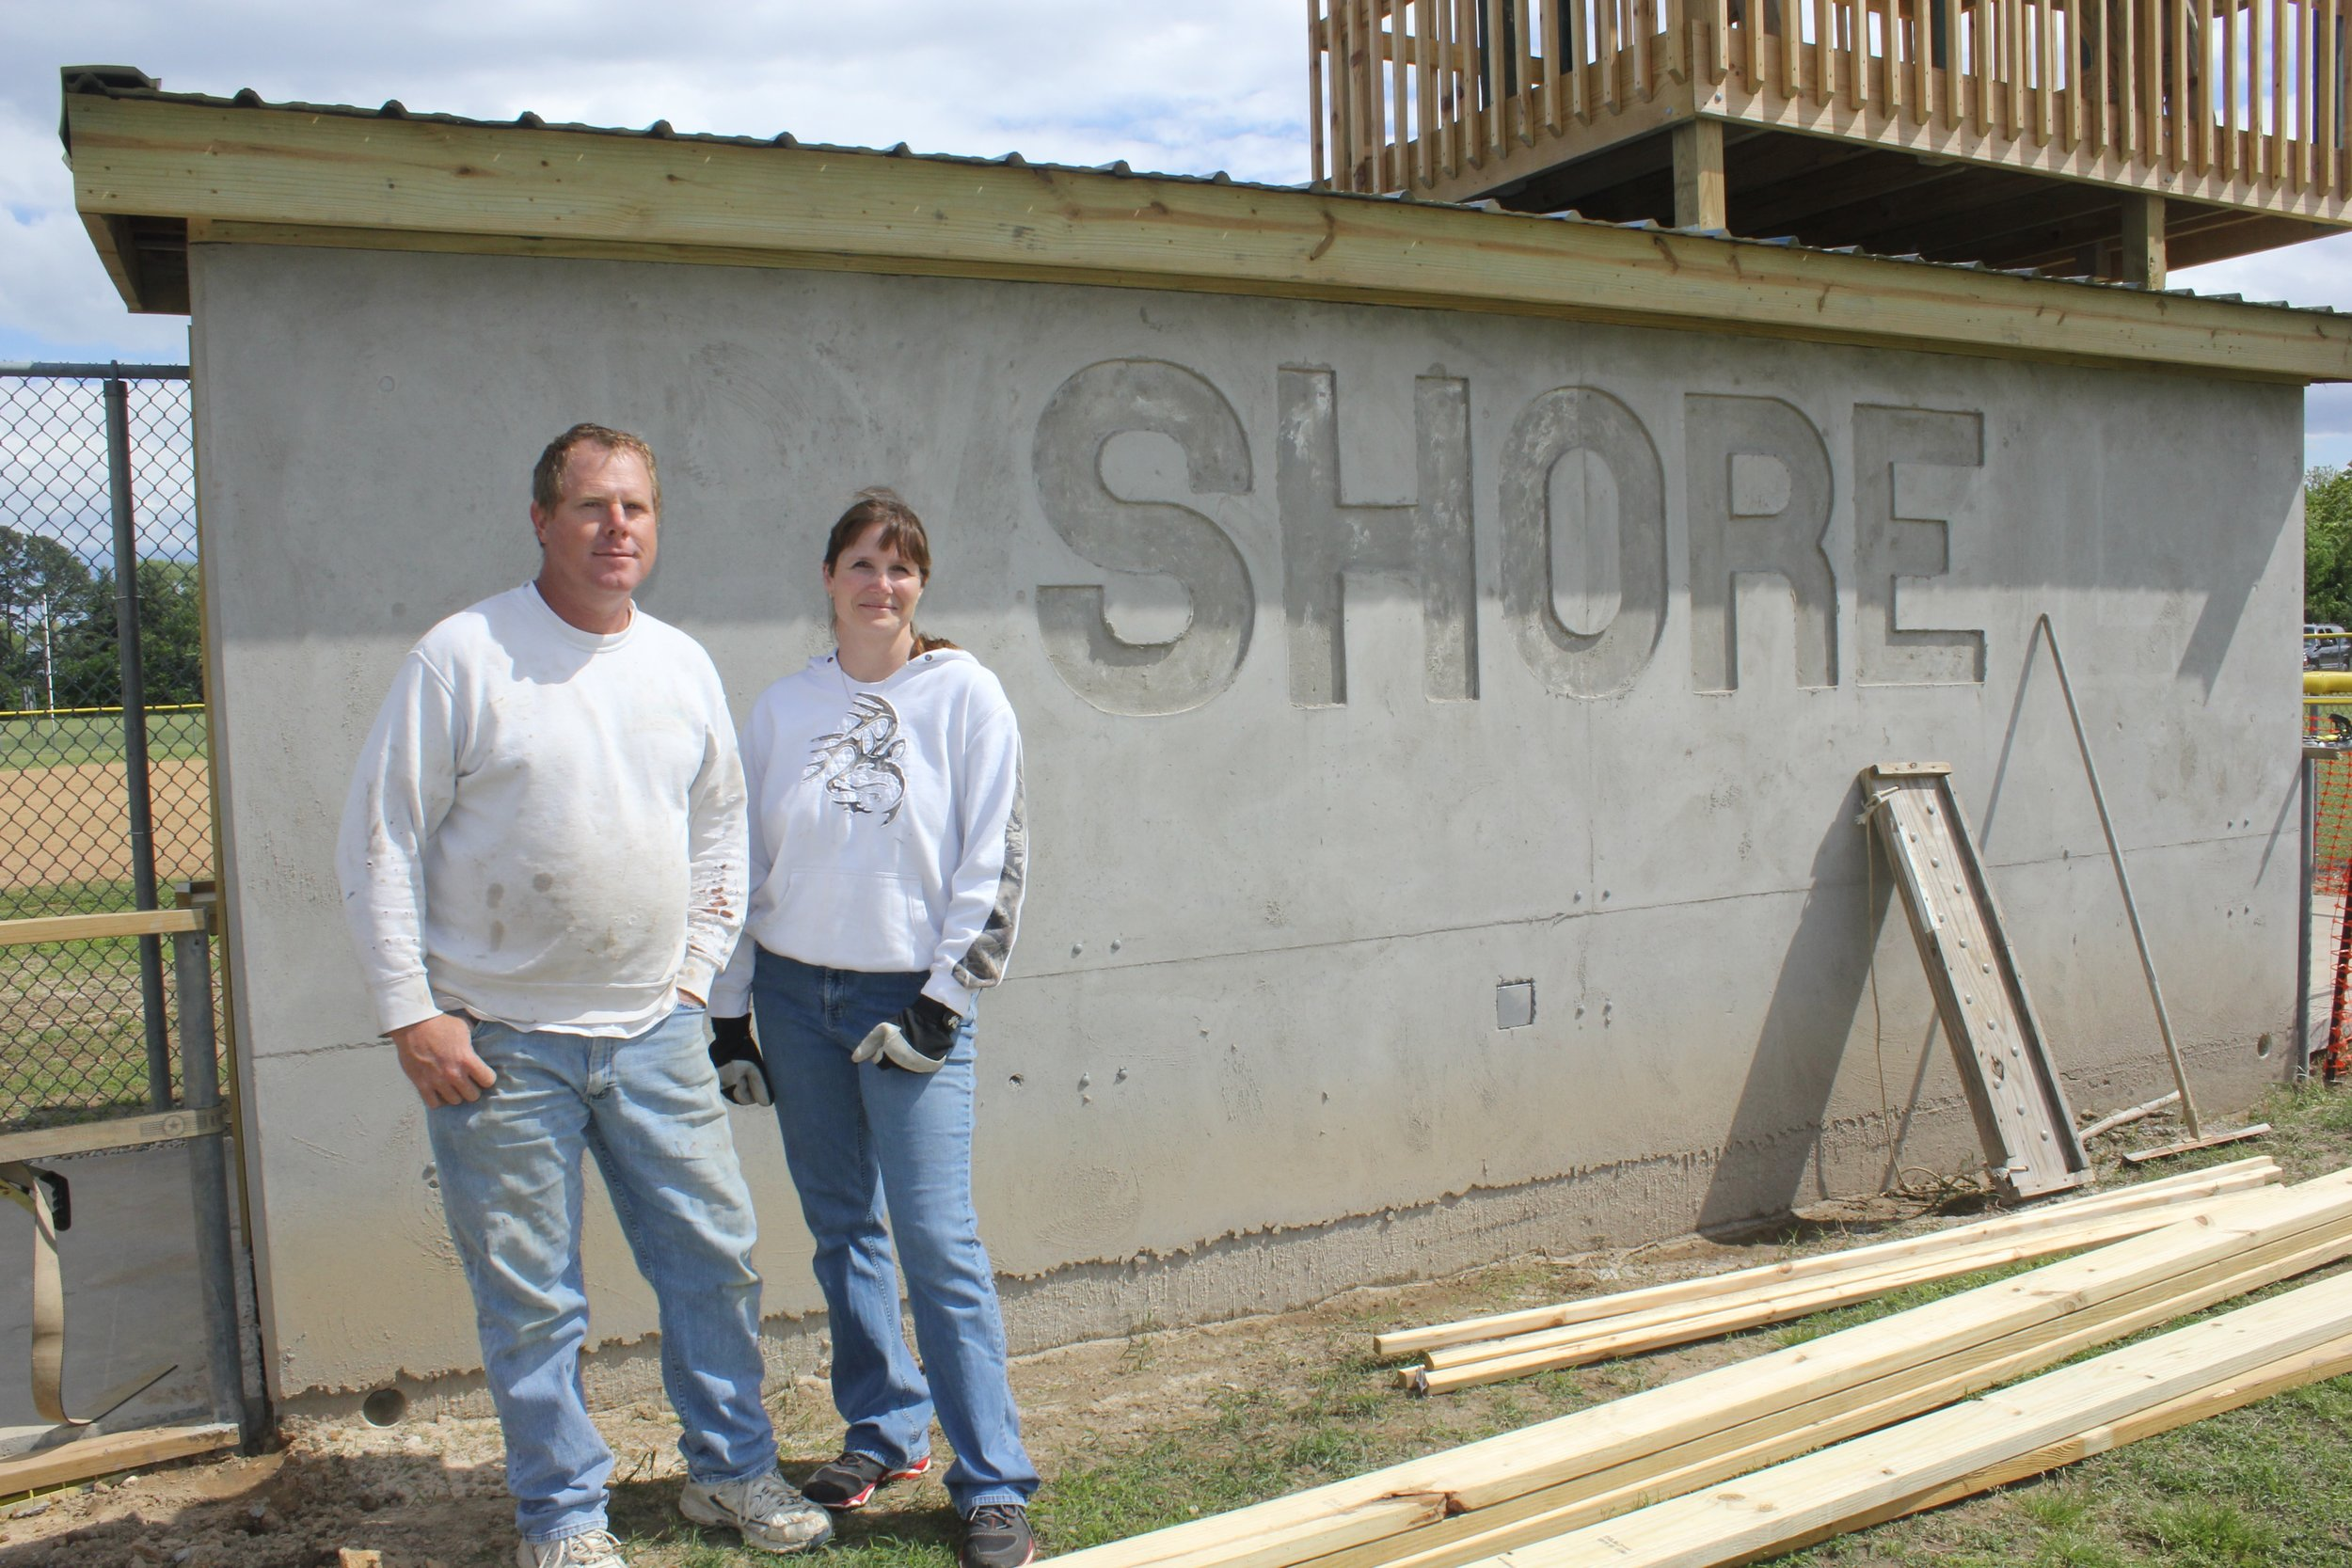 We love our volunteers!! Huge thank you to Thomas James and Michelle Ferebee for all the hours of work they dedicated to the construction of the new Shore Little League dug-outs. They look amazing!